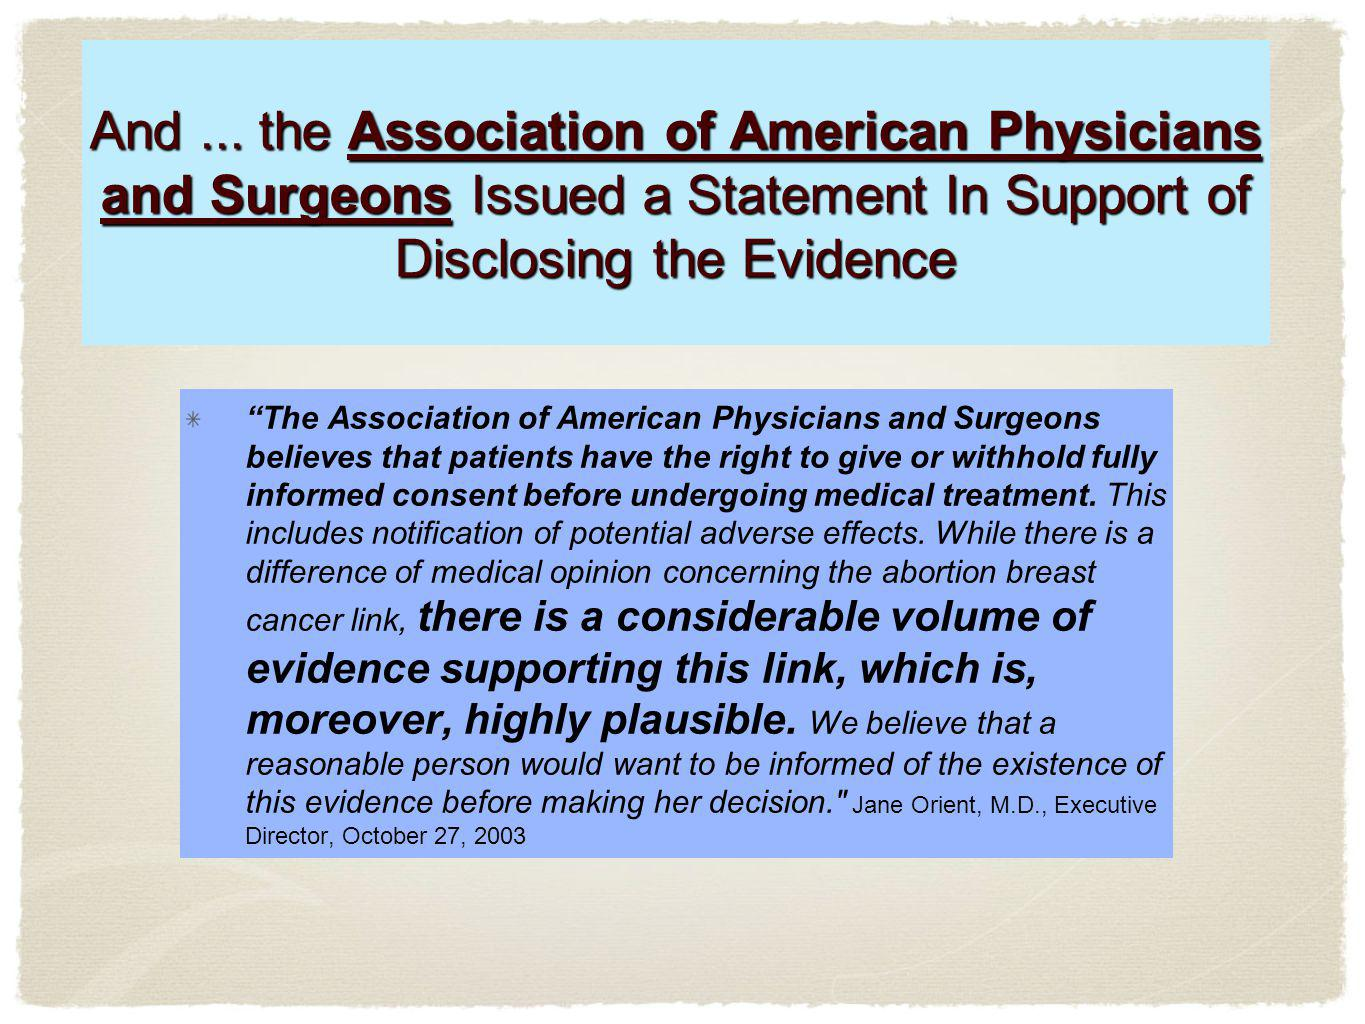 And ... the Association of American Physicians and Surgeons Issued a Statement In Support of Disclosing the Evidence